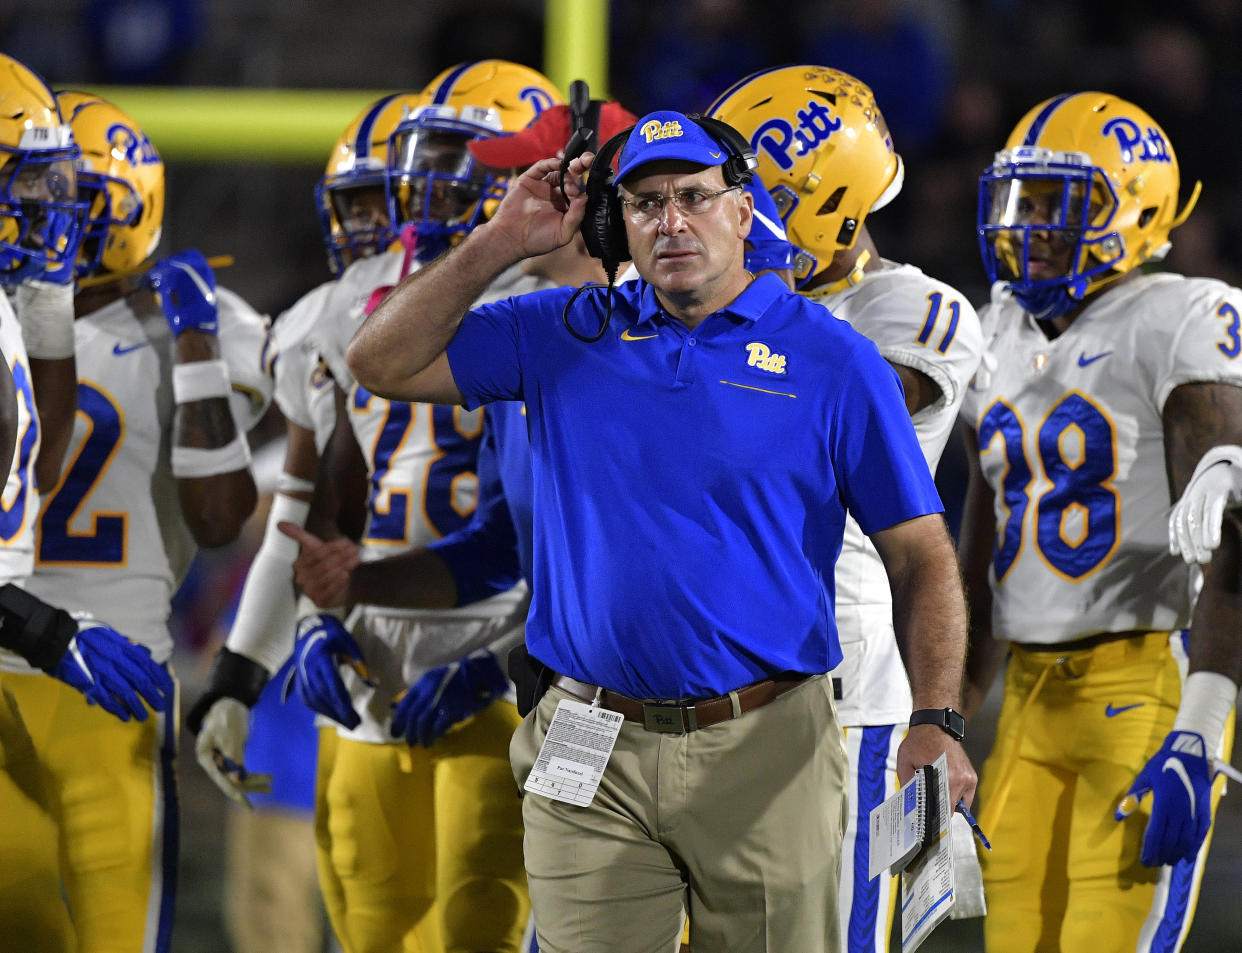 DURHAM, NORTH CAROLINA - OCTOBER 05: Head coach Pat Narduzzi of the Pittsburgh Panthers  during their game against the Duke Blue Devils at Wallace Wade Stadium on October 05, 2019 in Durham, North Carolina. Pittsburgh won 33-30. (Photo by Grant Halverson/Getty Images)